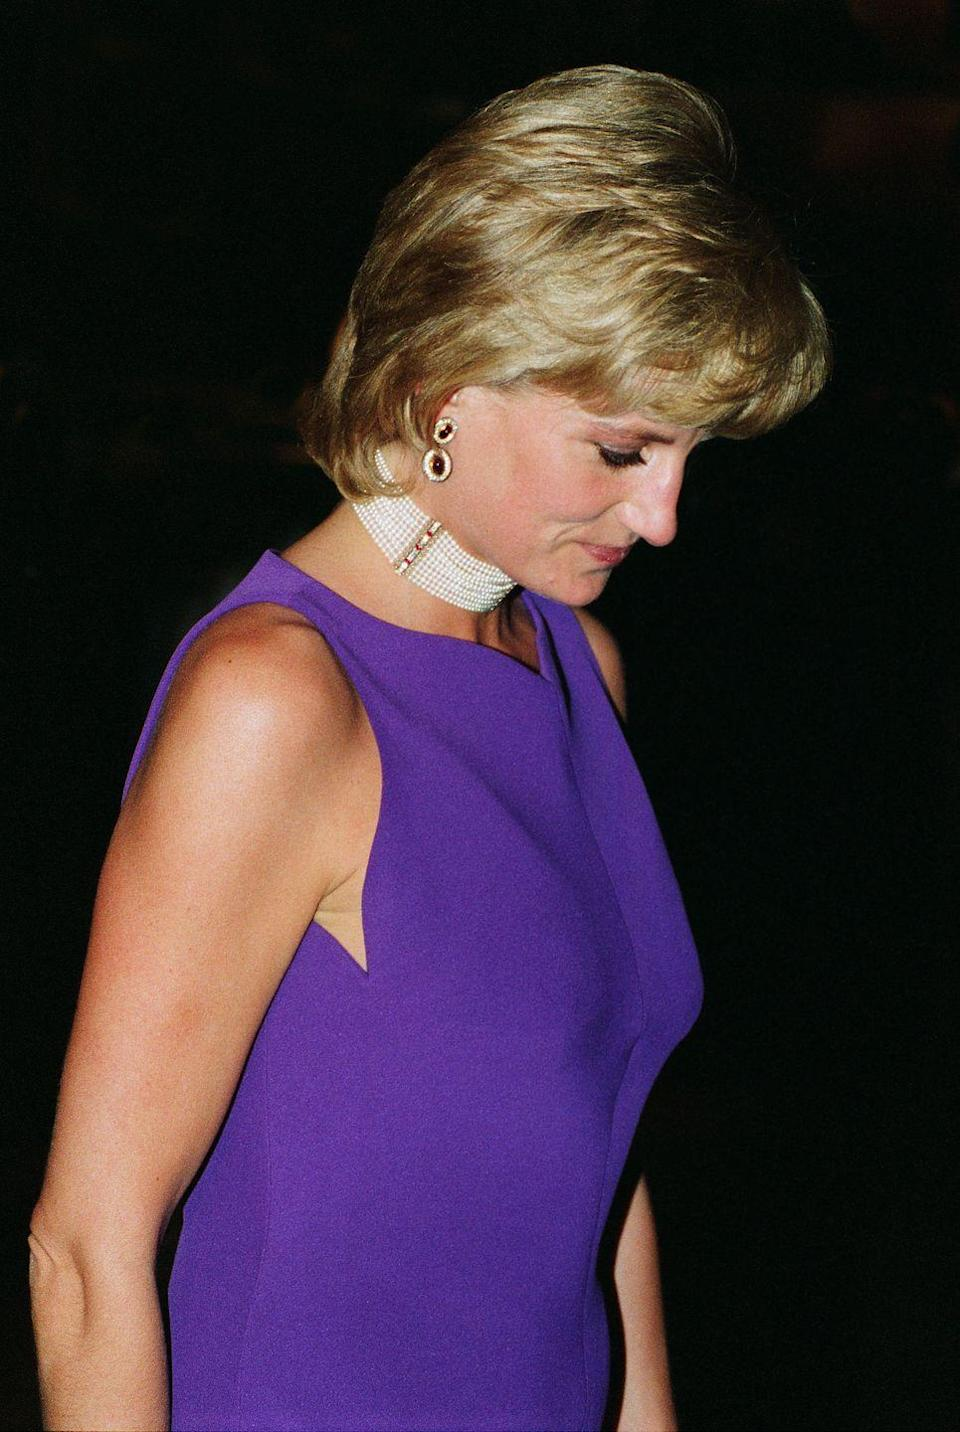 """<p>It's no secret Princess Diana was a fan of pearls, and this 11-strand pearl choker is one of her most enviable pieces of <a href=""""https://www.veranda.com/luxury-lifestyle/a32852562/pearl-june-birthstone/"""" rel=""""nofollow noopener"""" target=""""_blank"""" data-ylk=""""slk:pearl jewelry"""" class=""""link rapid-noclick-resp"""">pearl jewelry</a>. While she had many pearl chokers, this one, made with 900 pearls and columns of diamonds and rubies, was a favorite of hers to wear to film premieres and nights at the theater. </p>"""